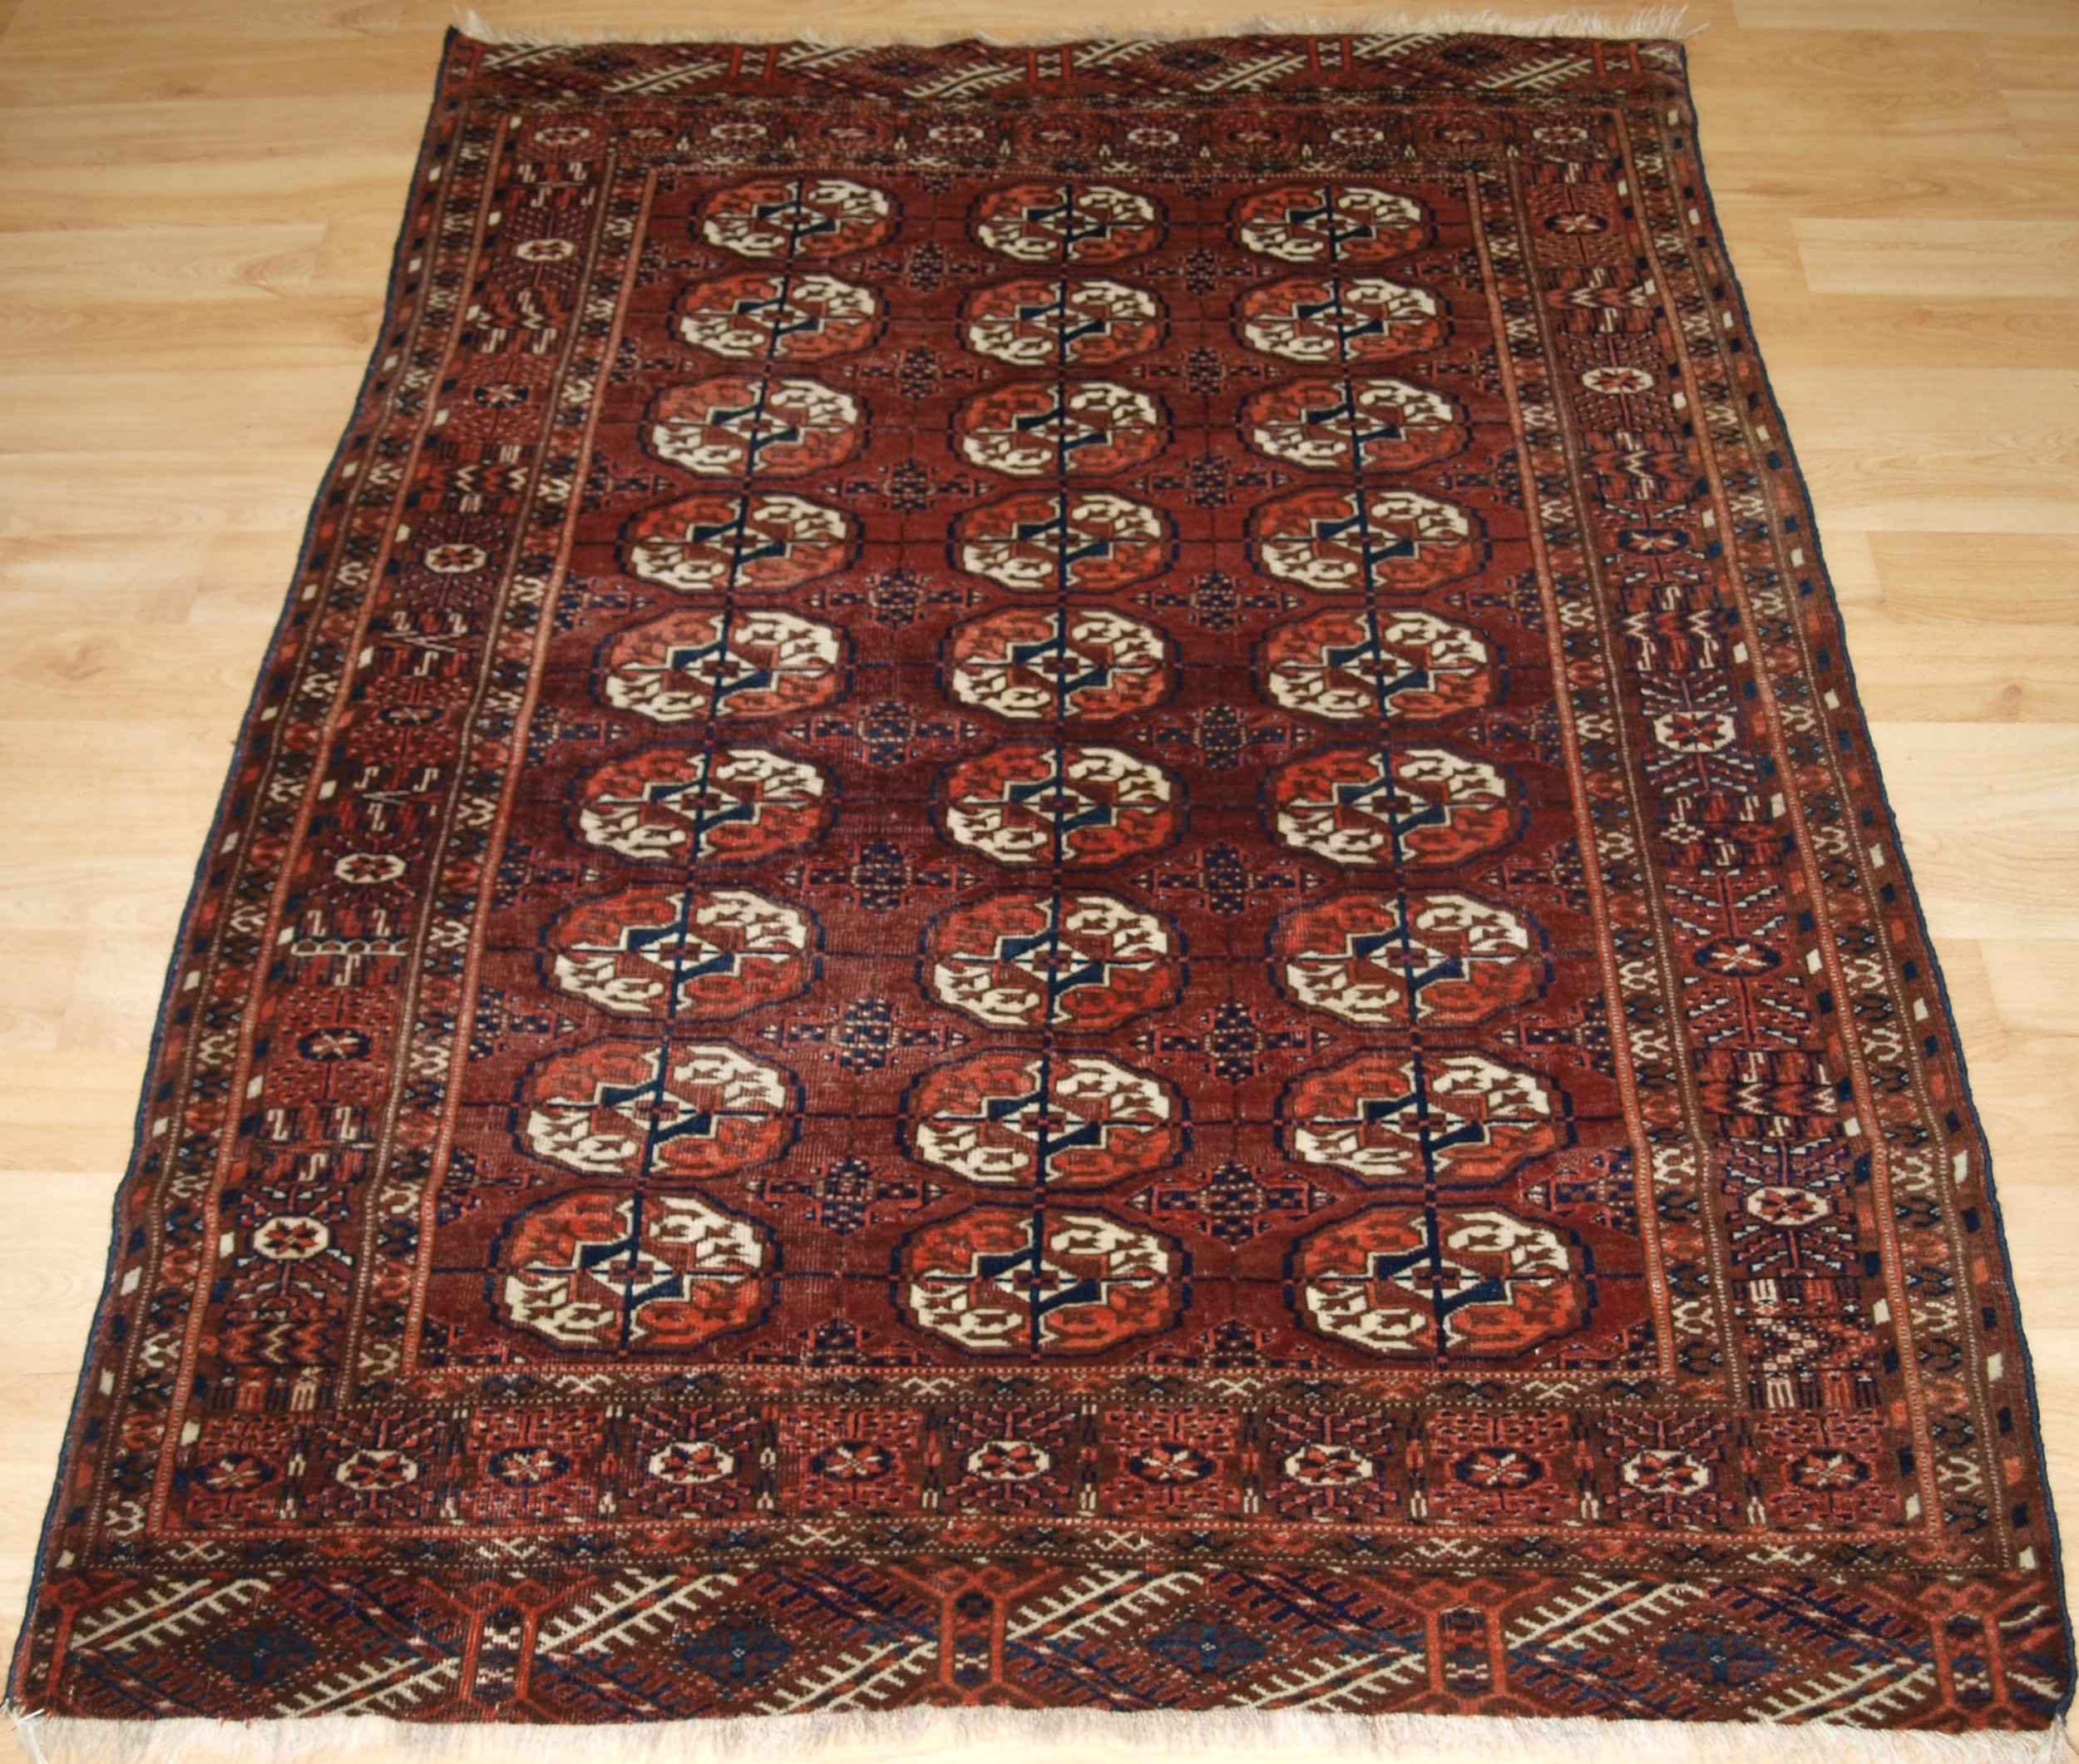 antique tekke turkmen rug small size red brown colour circa 1900